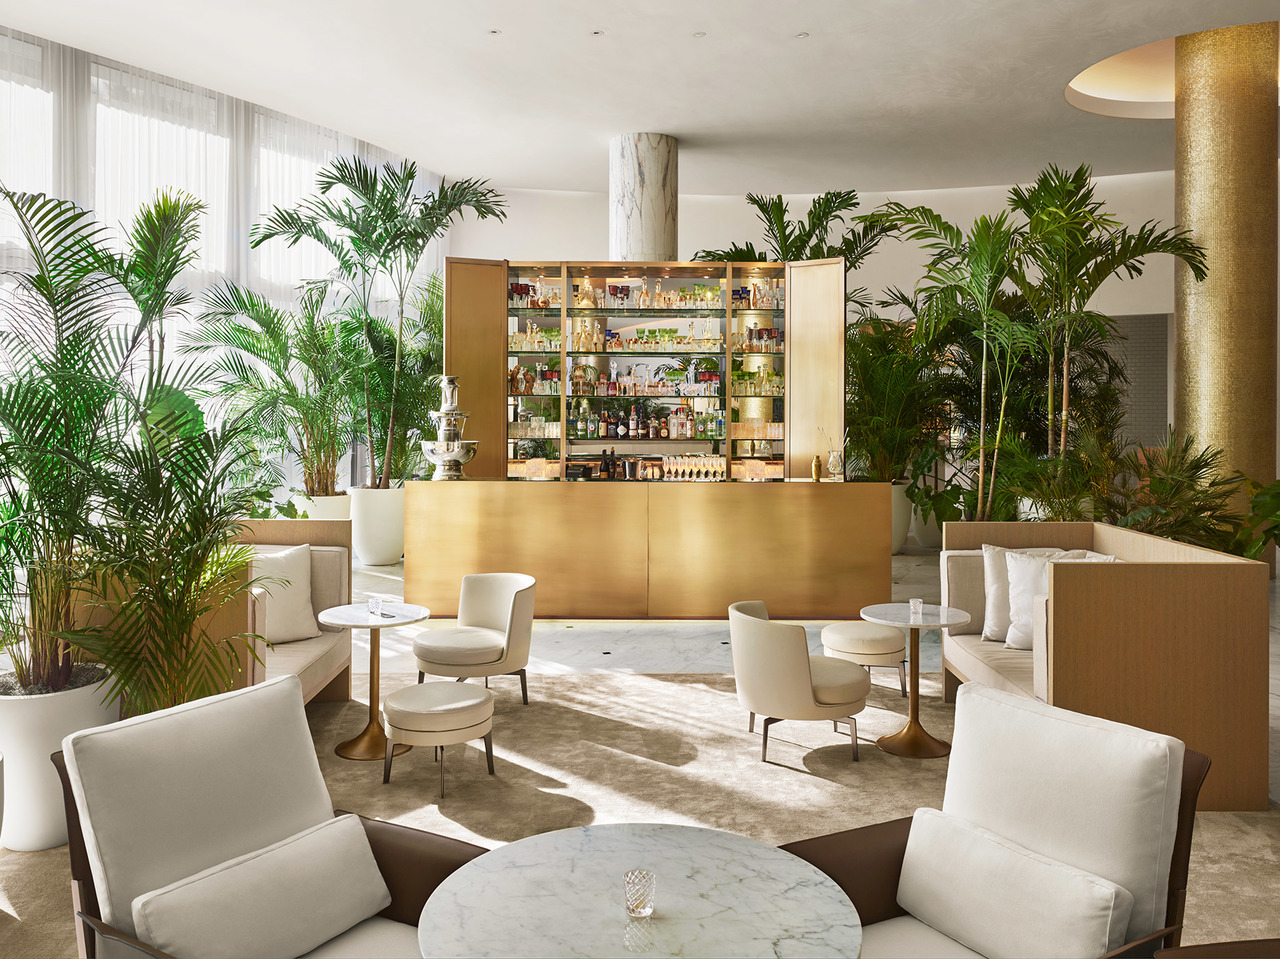 edition-miami-ian-schrager-restaurant-bar.jpg